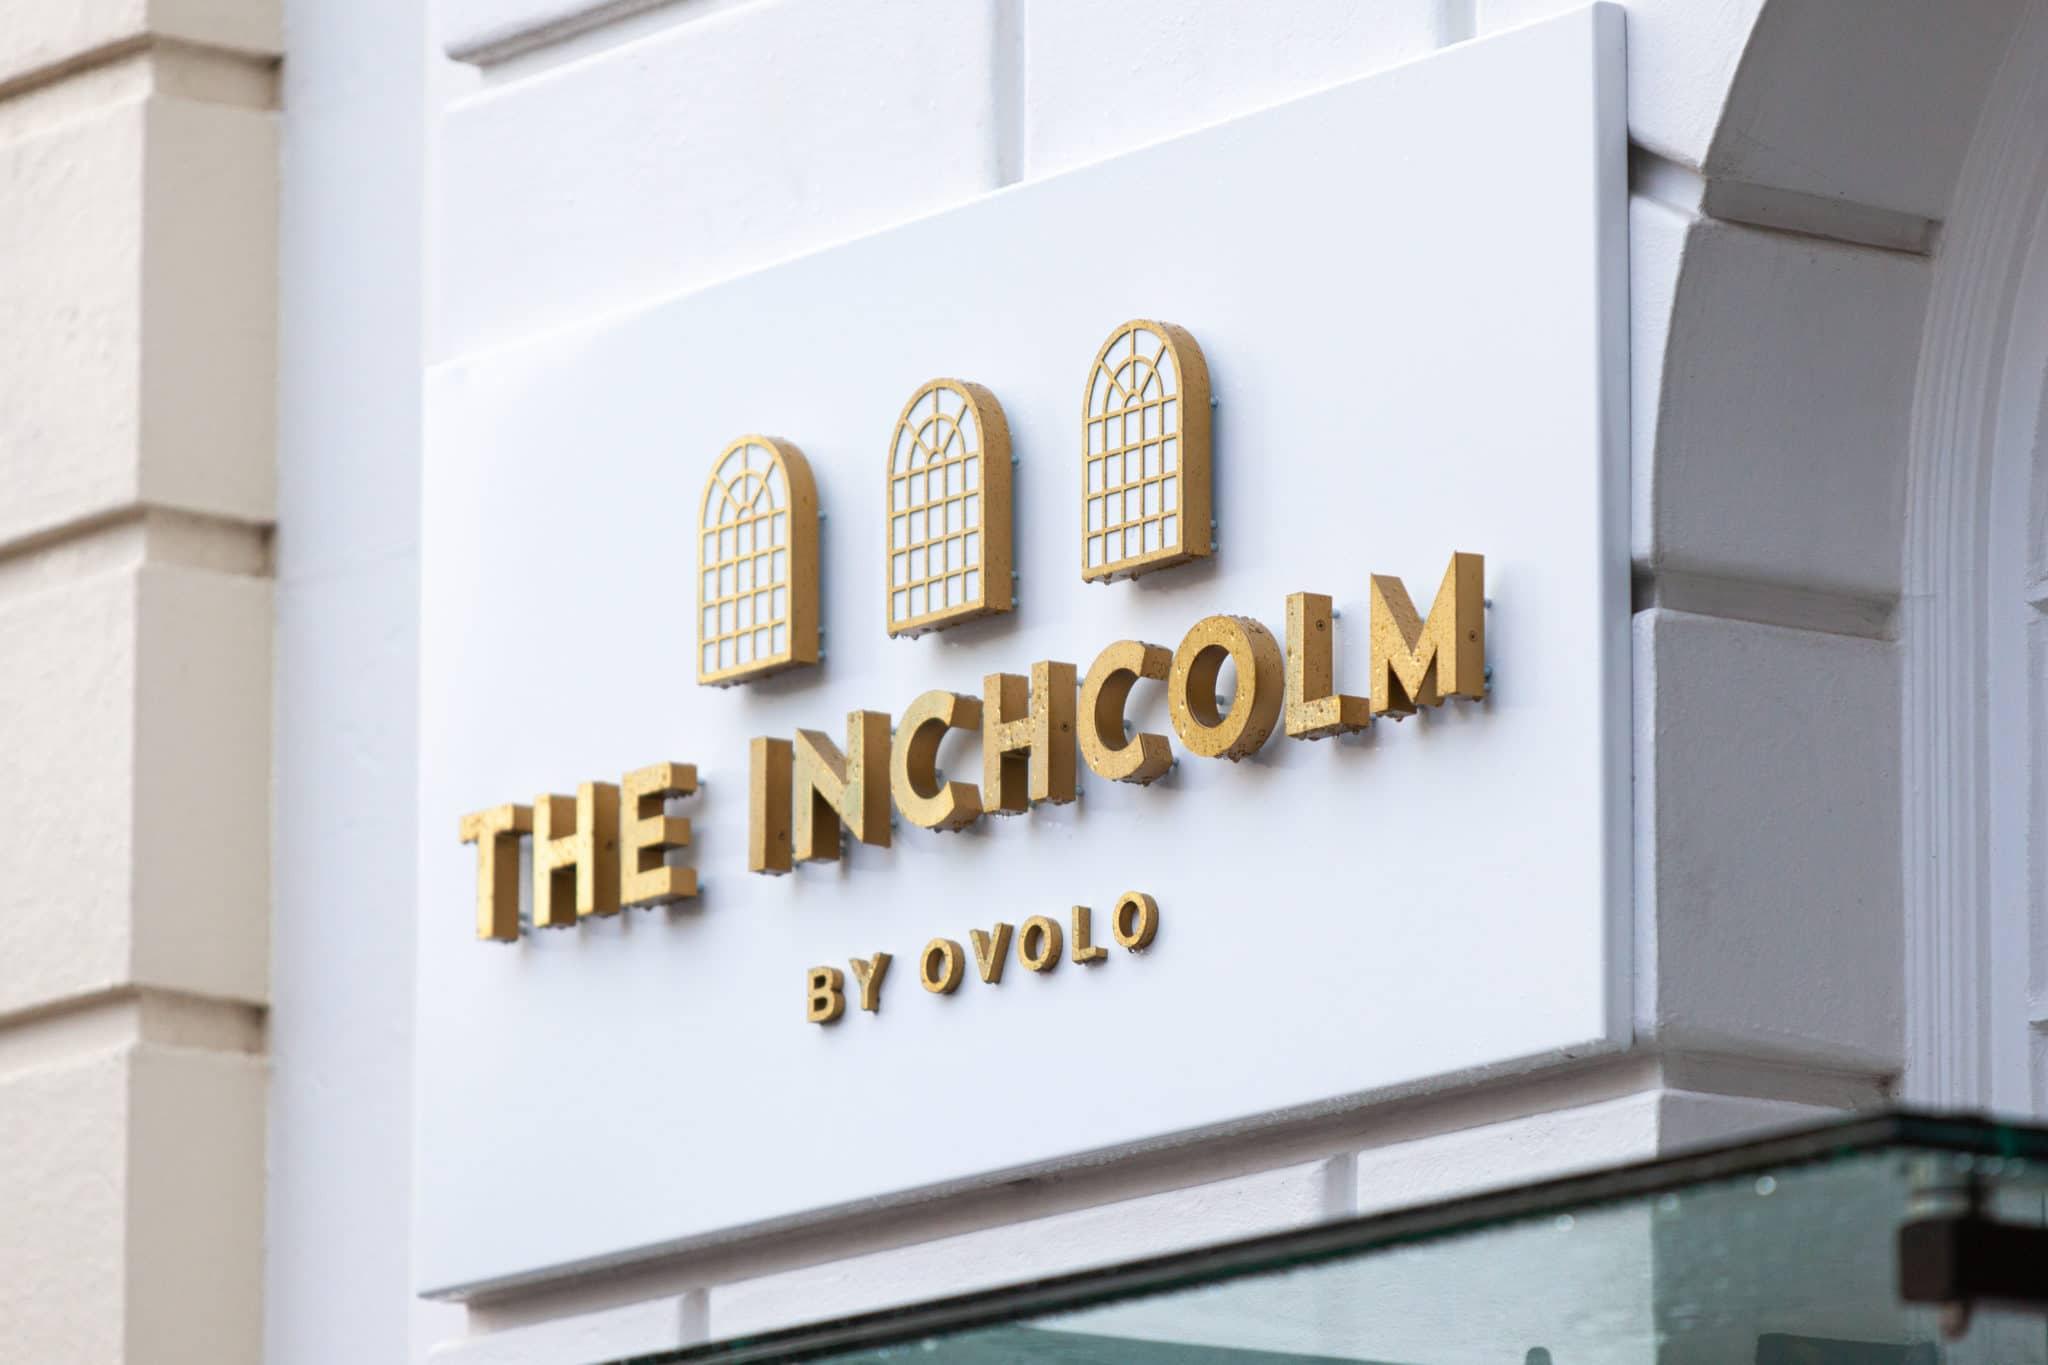 The Incholm, a model of Boutique Luxury